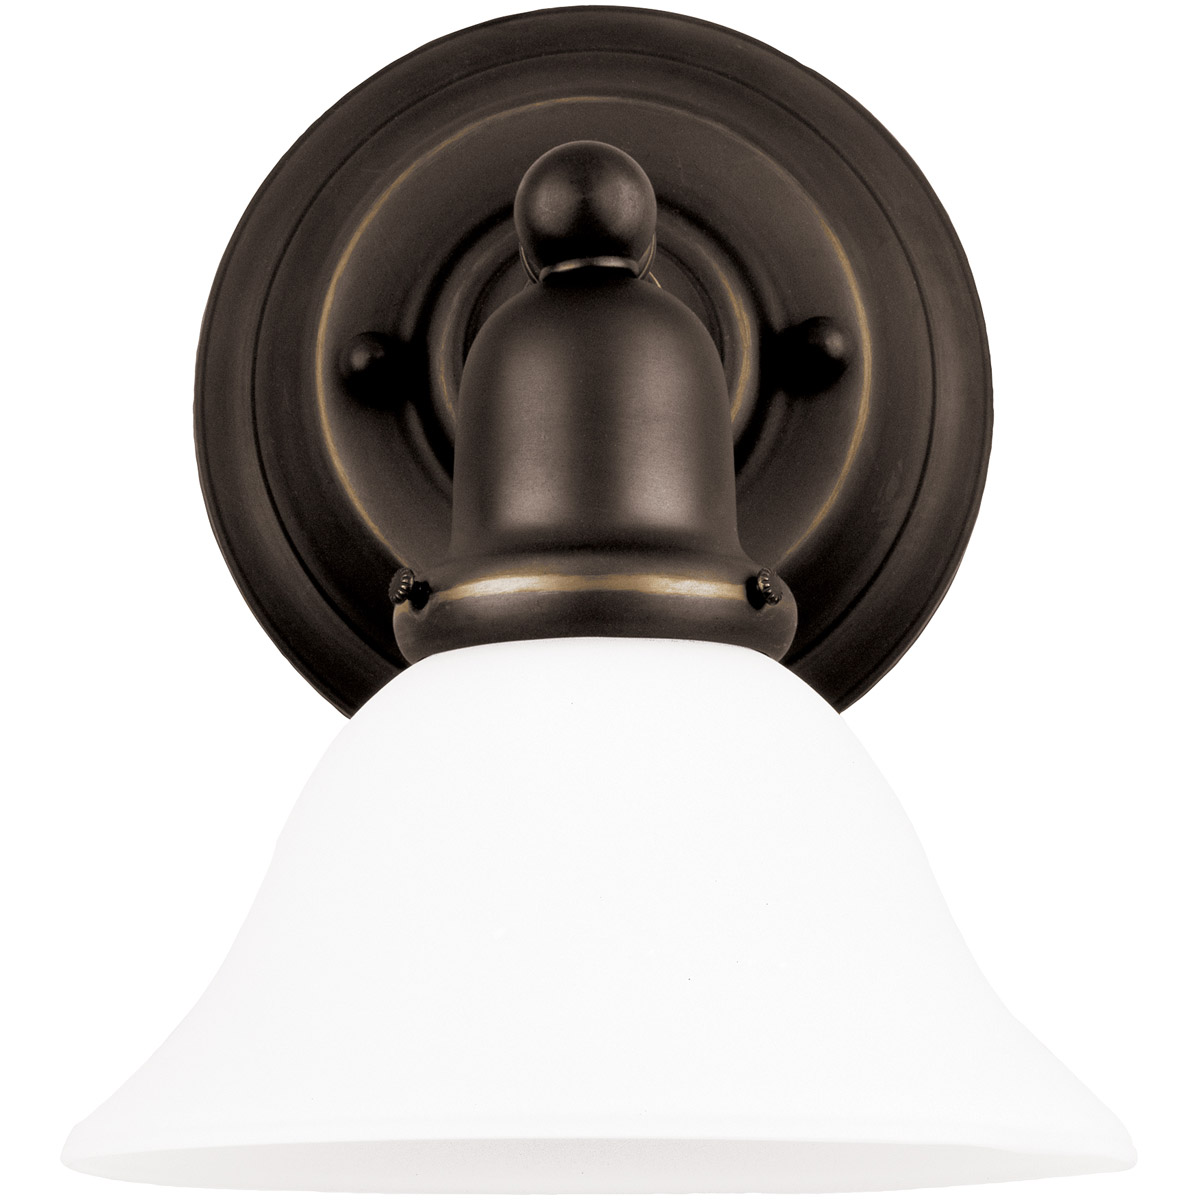 Sea Gull Lighting Sussex 1 Light Bath Vanity in Heirloom Bronze 44060-782